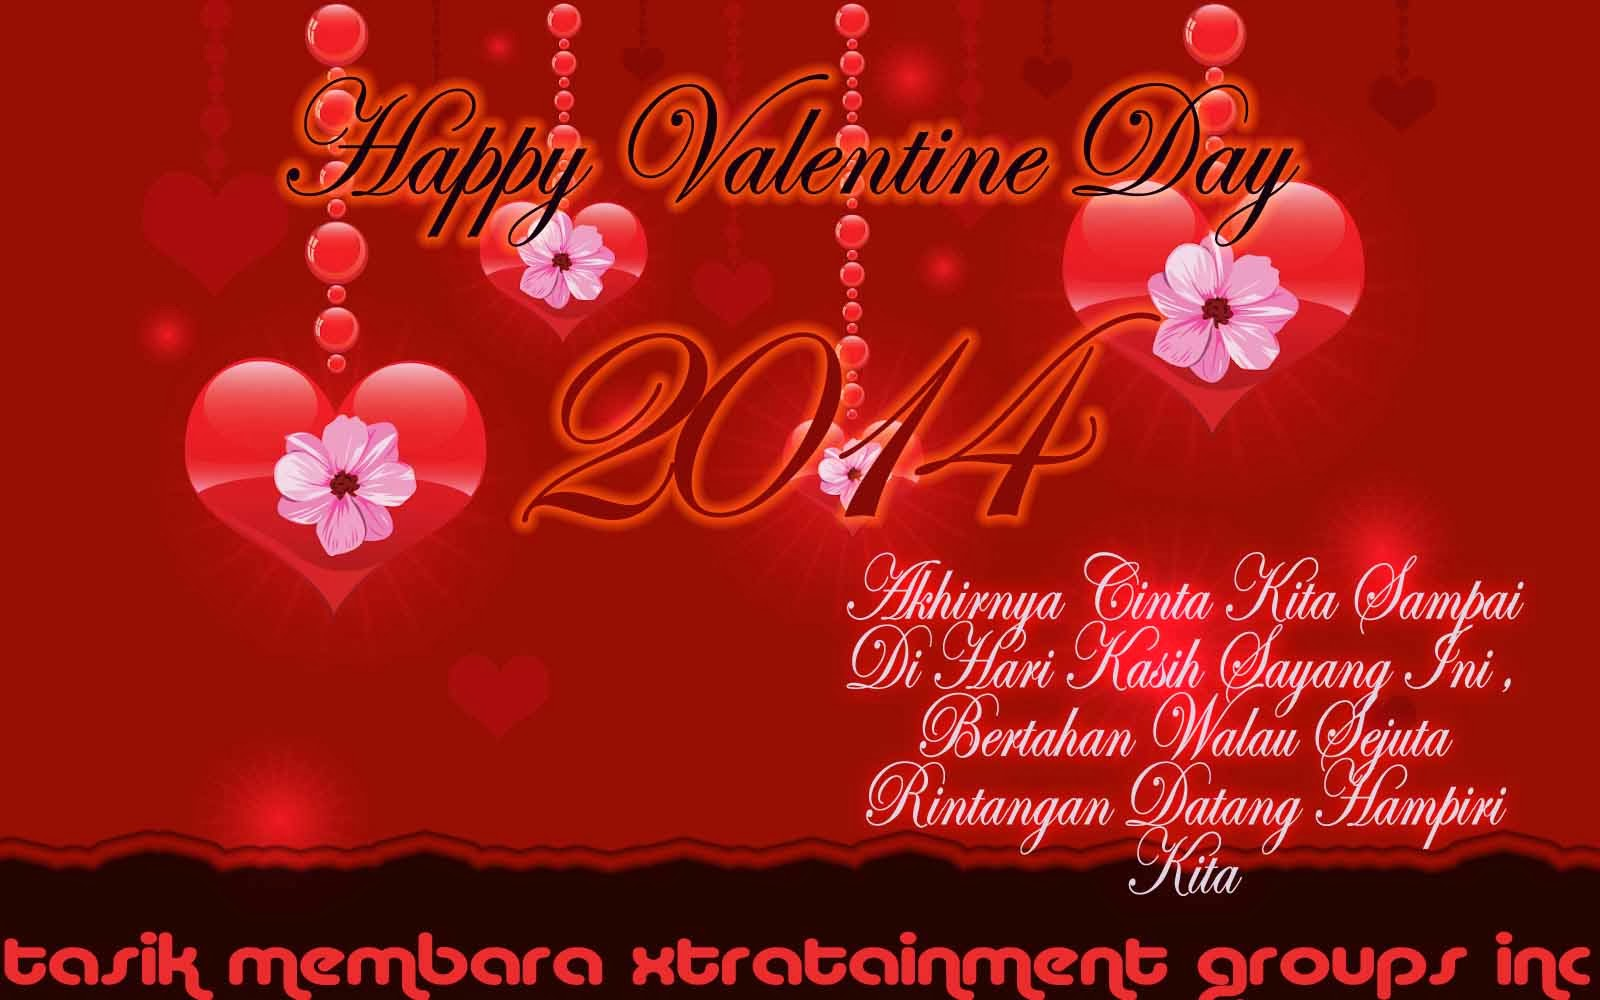 Kartu Ucapan Happy Valentine Days 2014 Romance